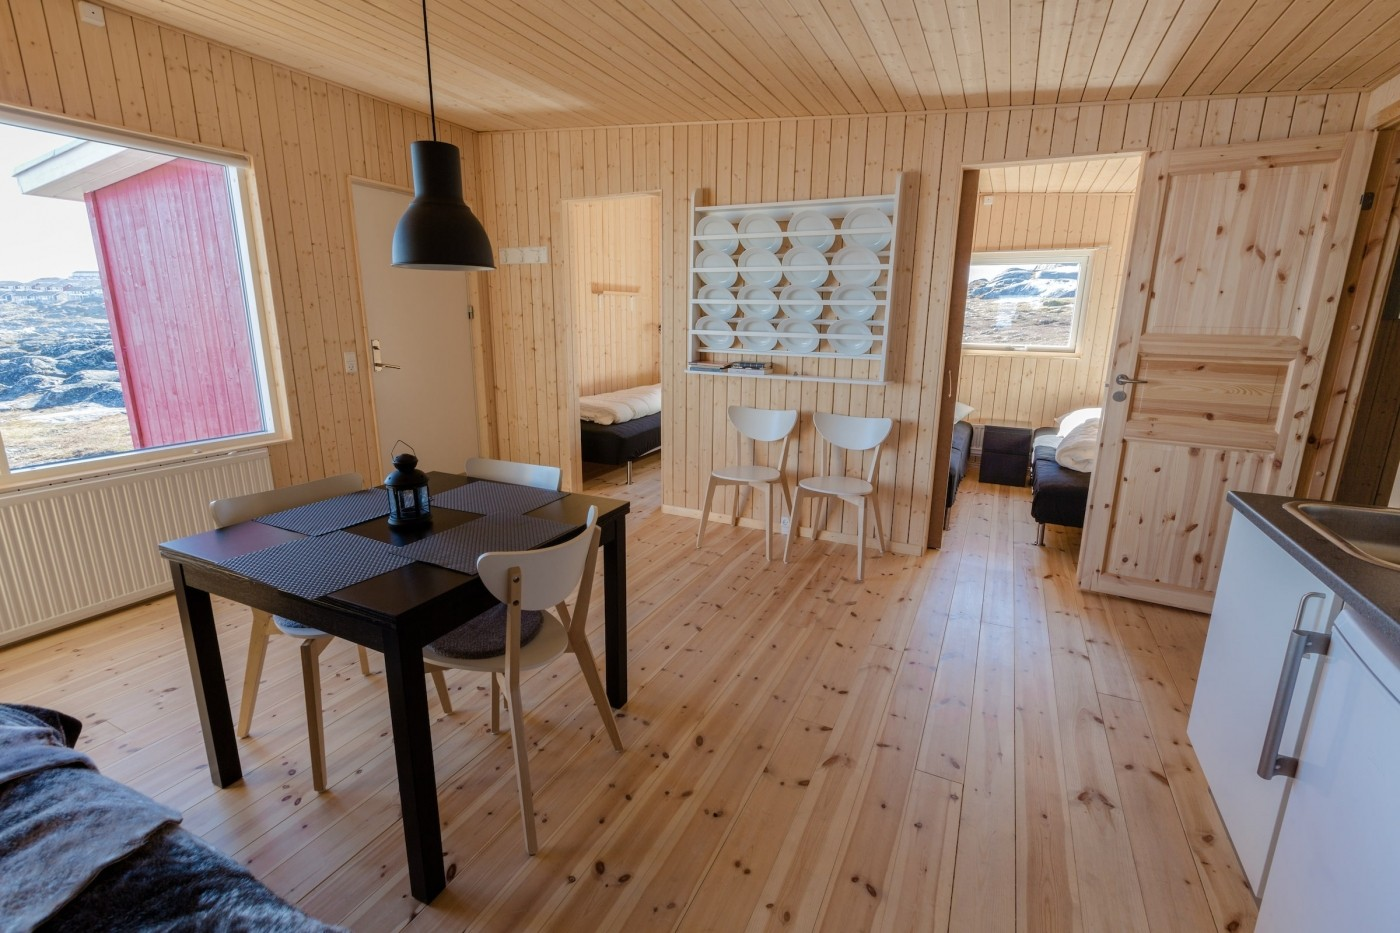 One of the lodges of Inuk Hostels, Nuuk. Photo by Daniel Gurrola - Visit Greenland